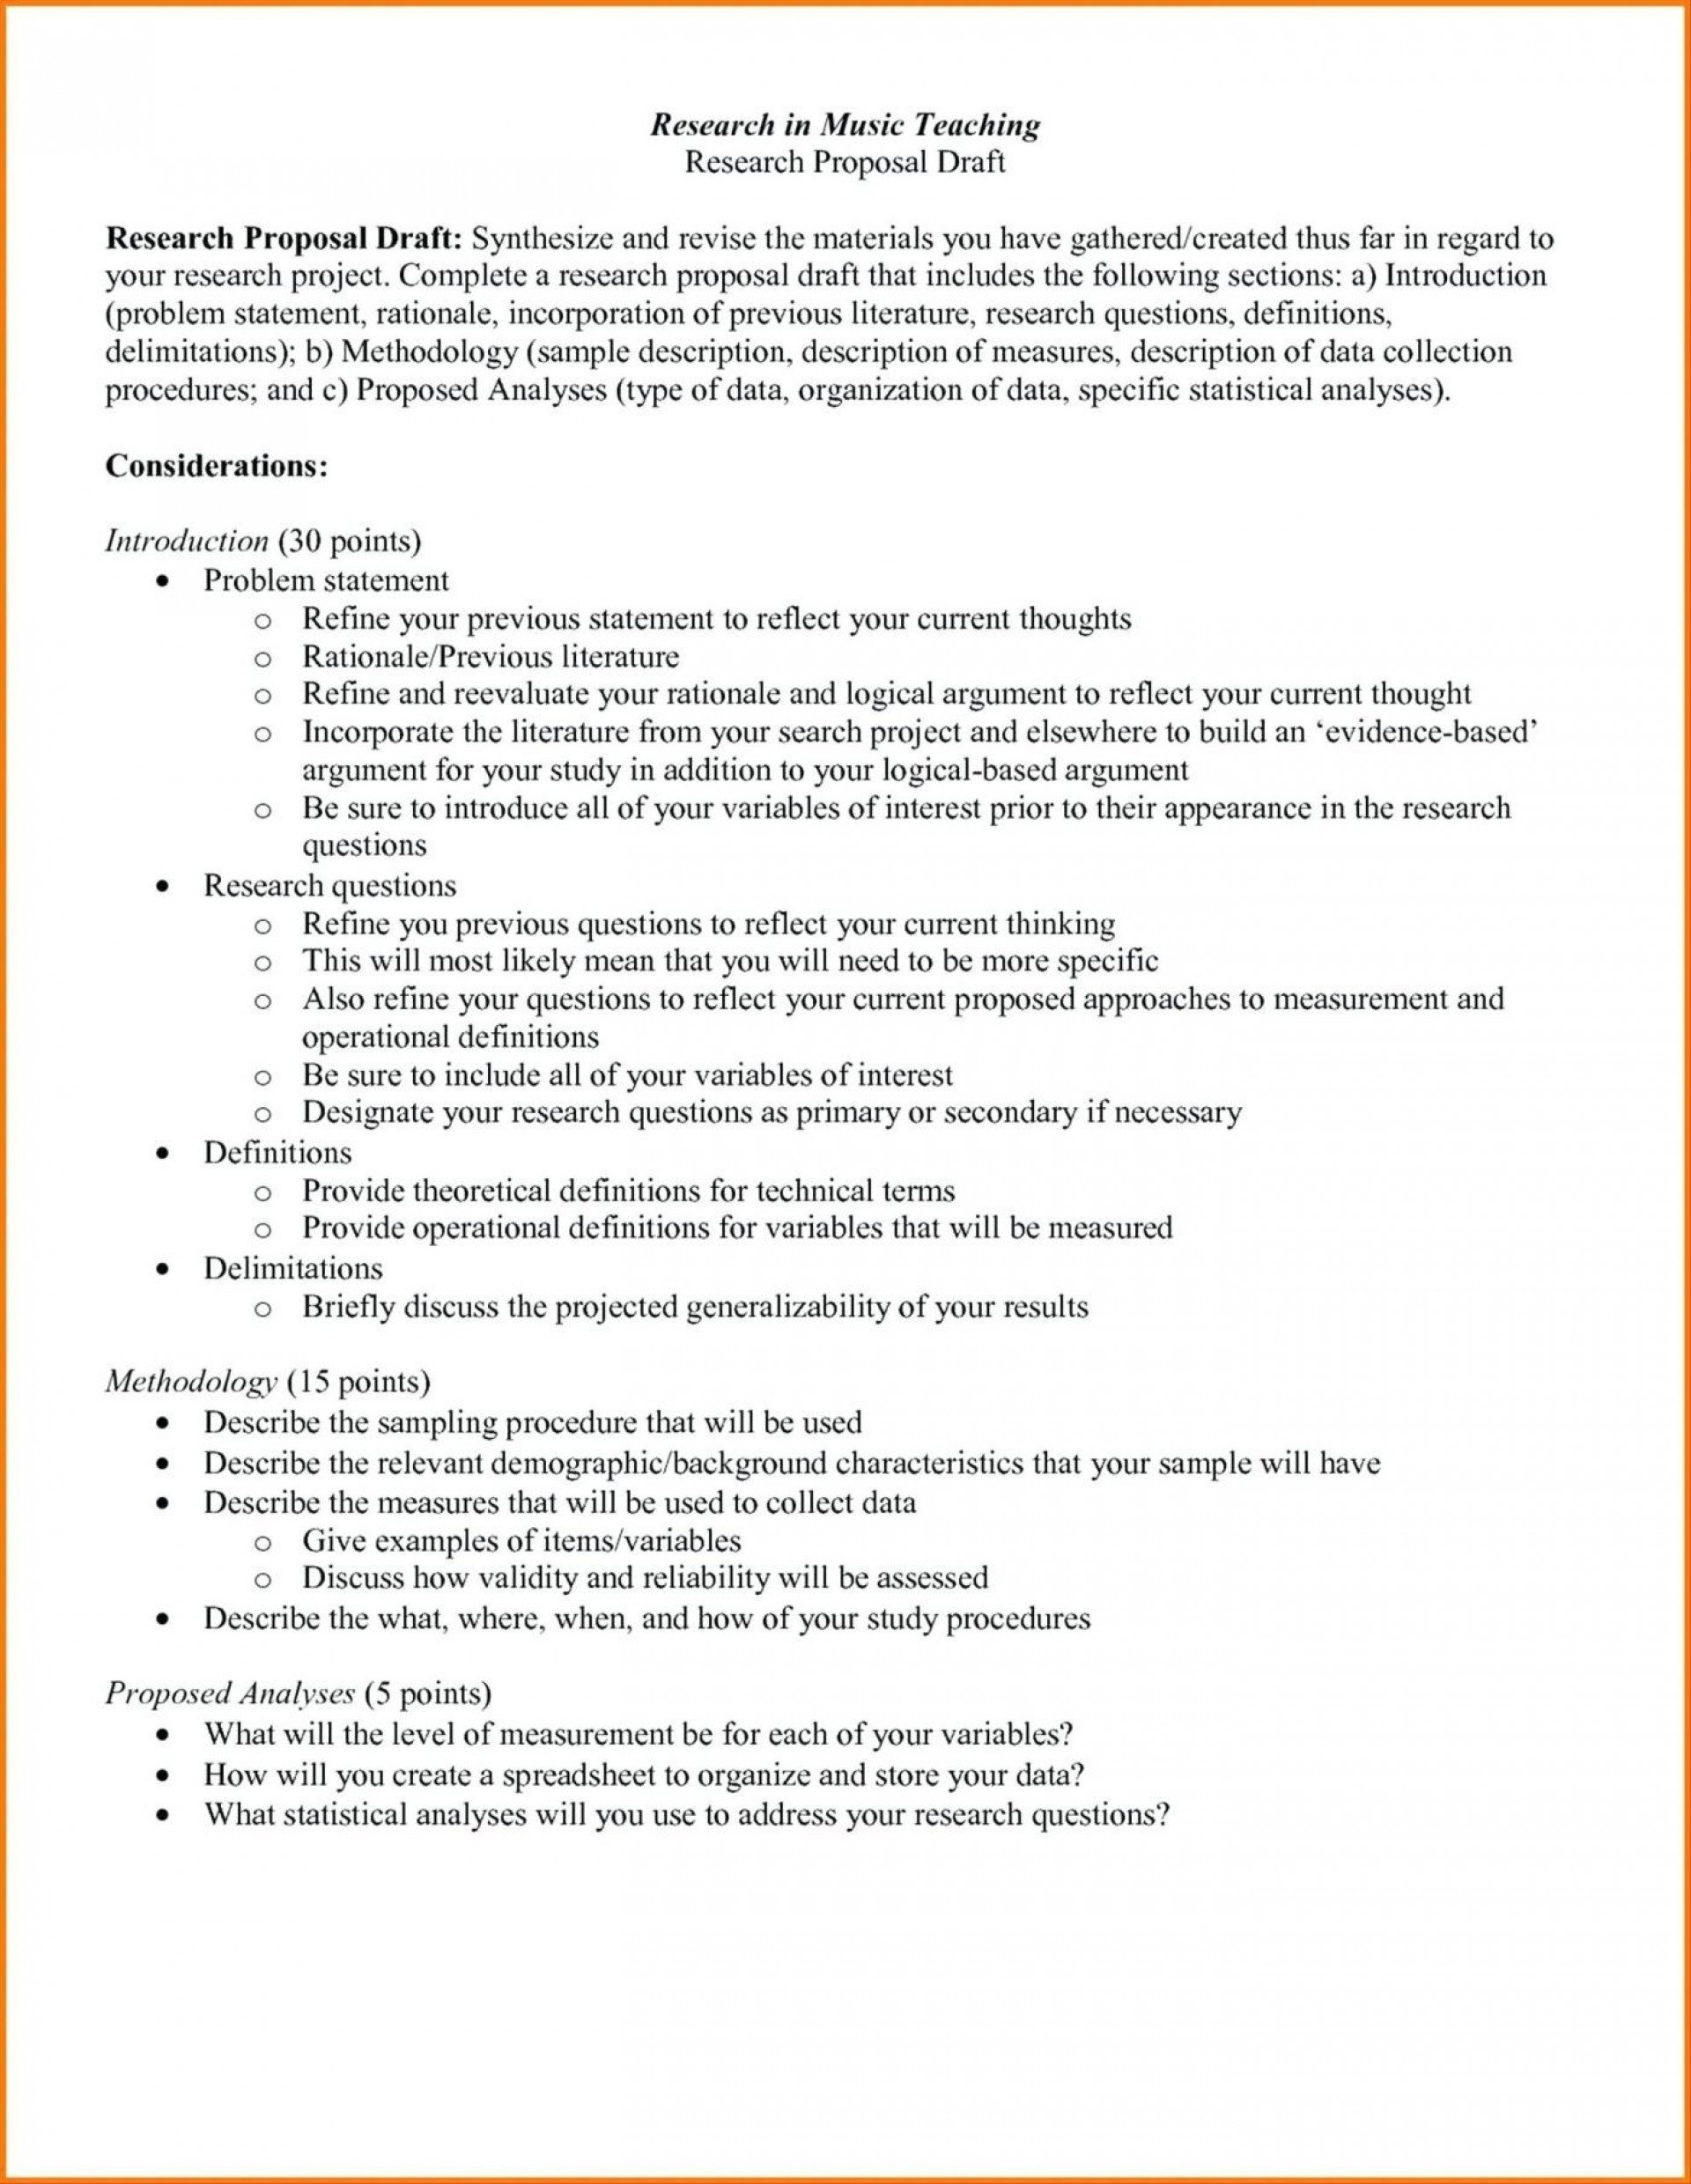 018 Research Plan Template Pricing Proposal Inspirational Business Together With Background Research Plan Worksheet